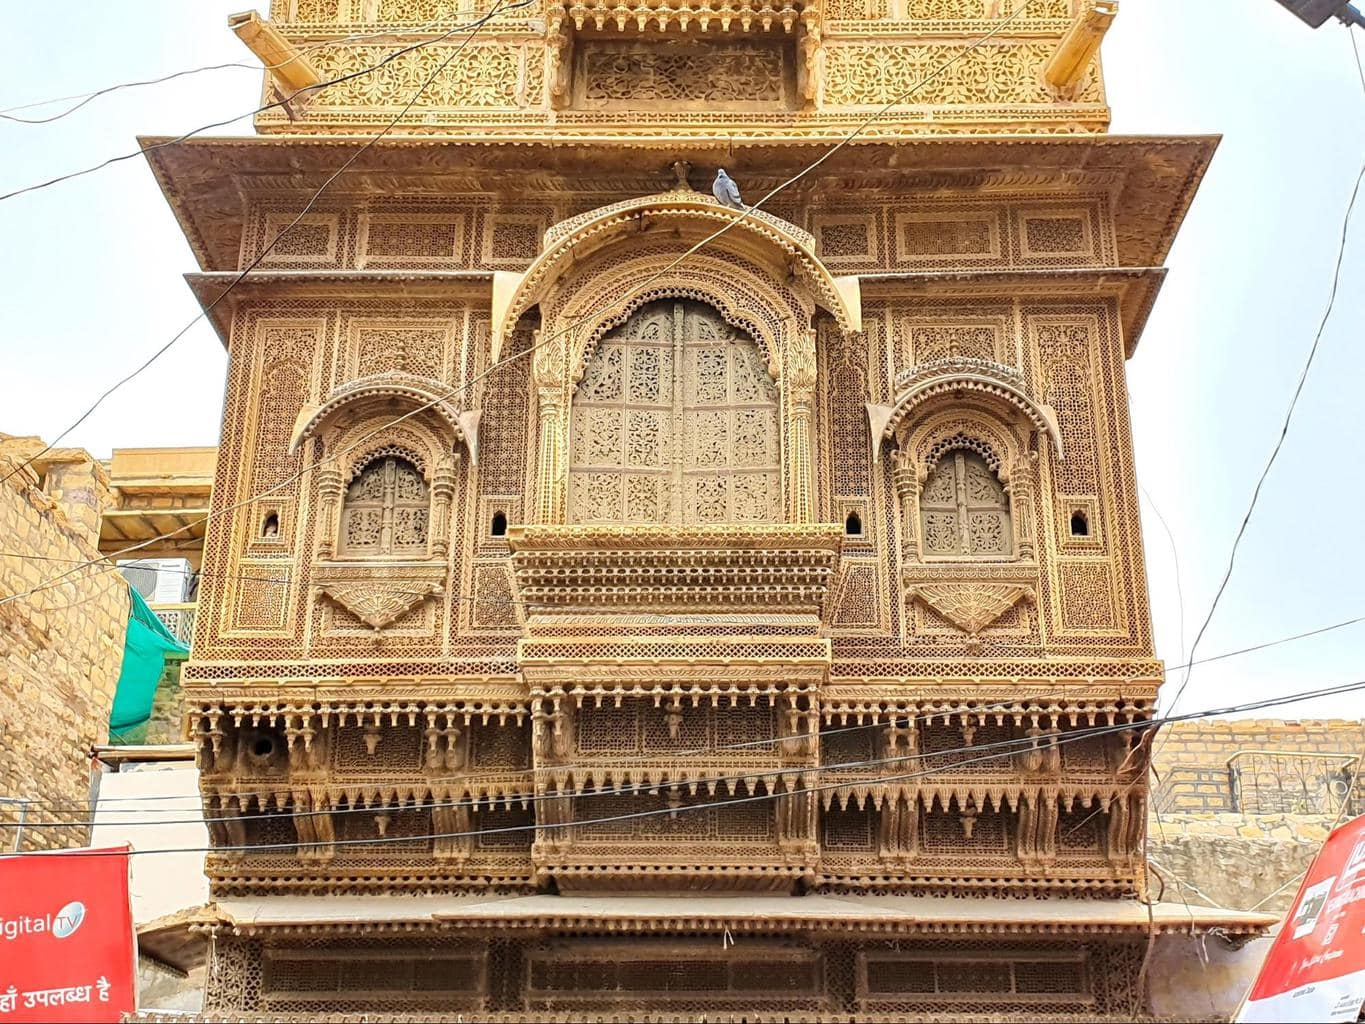 The beautiful facades of Jaisalmer Fort